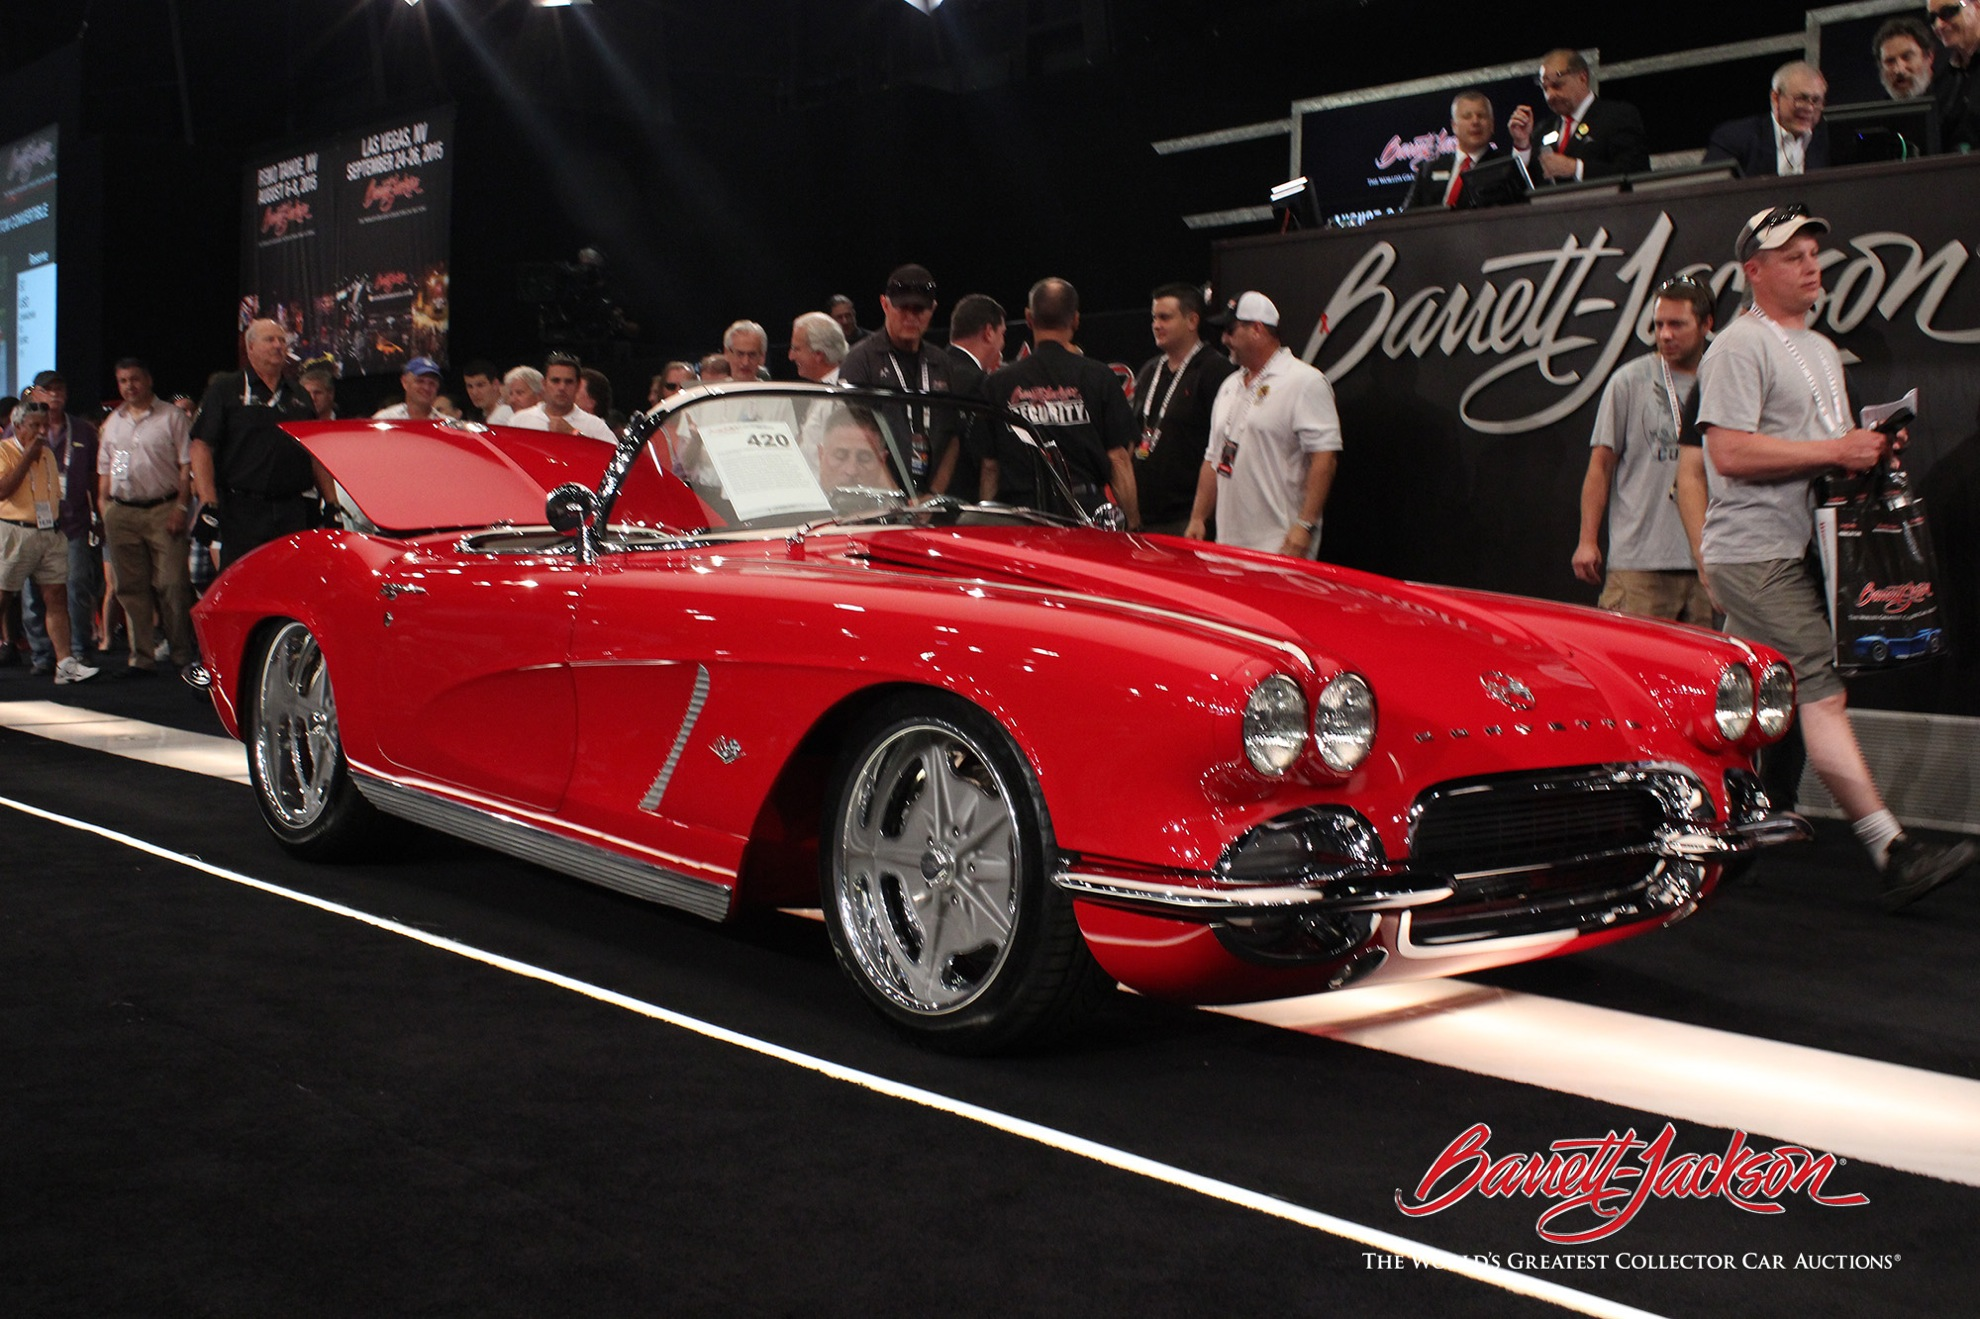 Lot #420 – 1962 Chevrolet Corvette Custom – $192,500